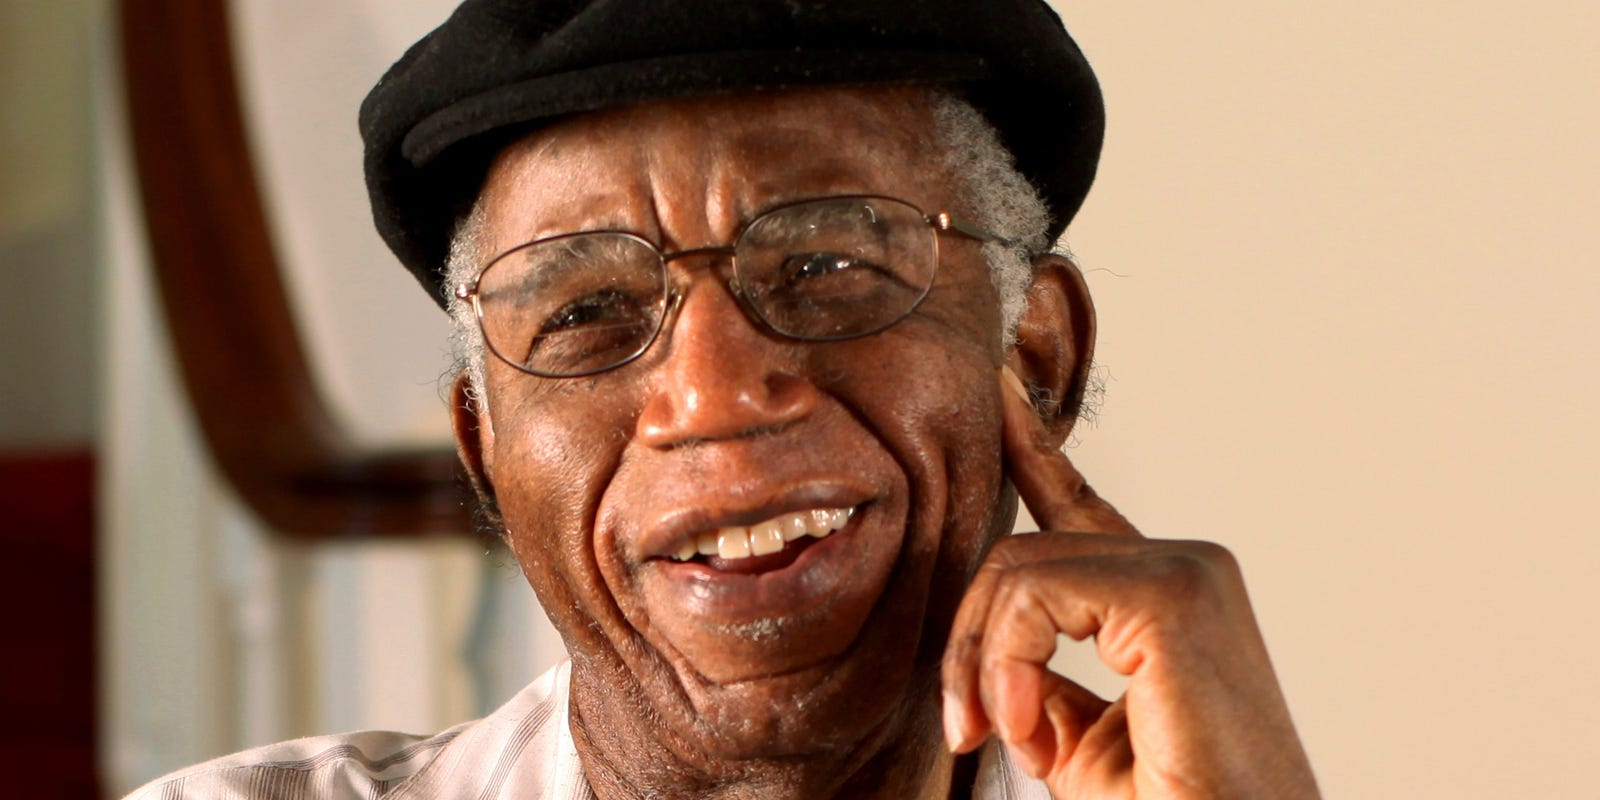 appreciation chinua achebe influenced writers around the world